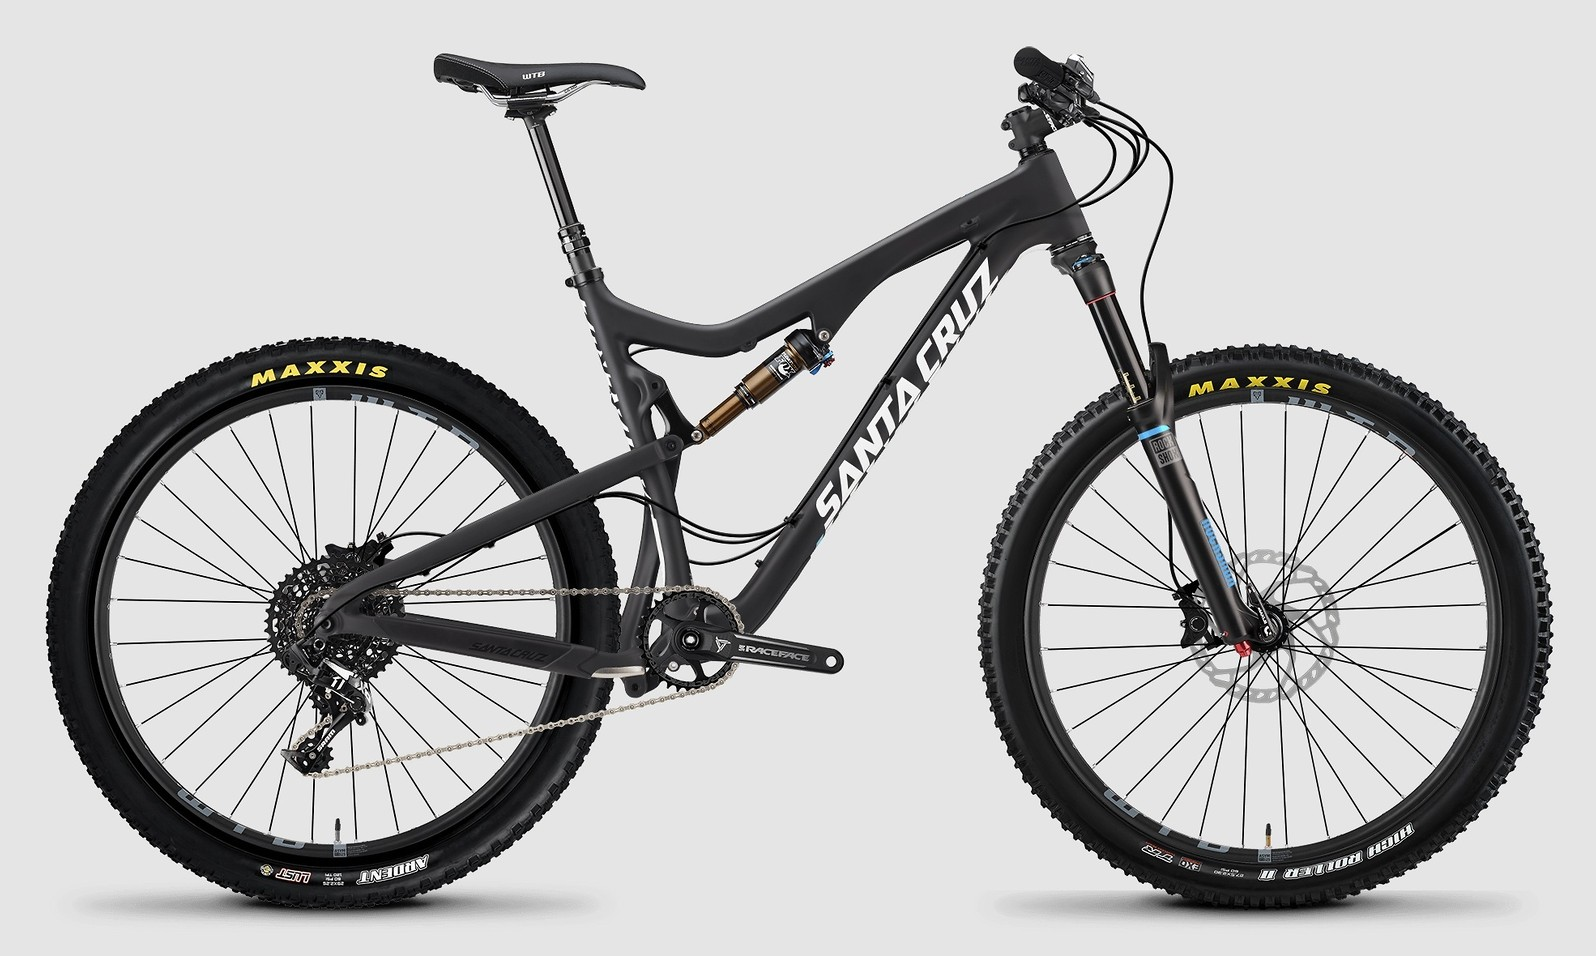 Continental Bike Tires >> 2015 Santa Cruz 5010 Carbon X01 - Reviews, Comparisons ...